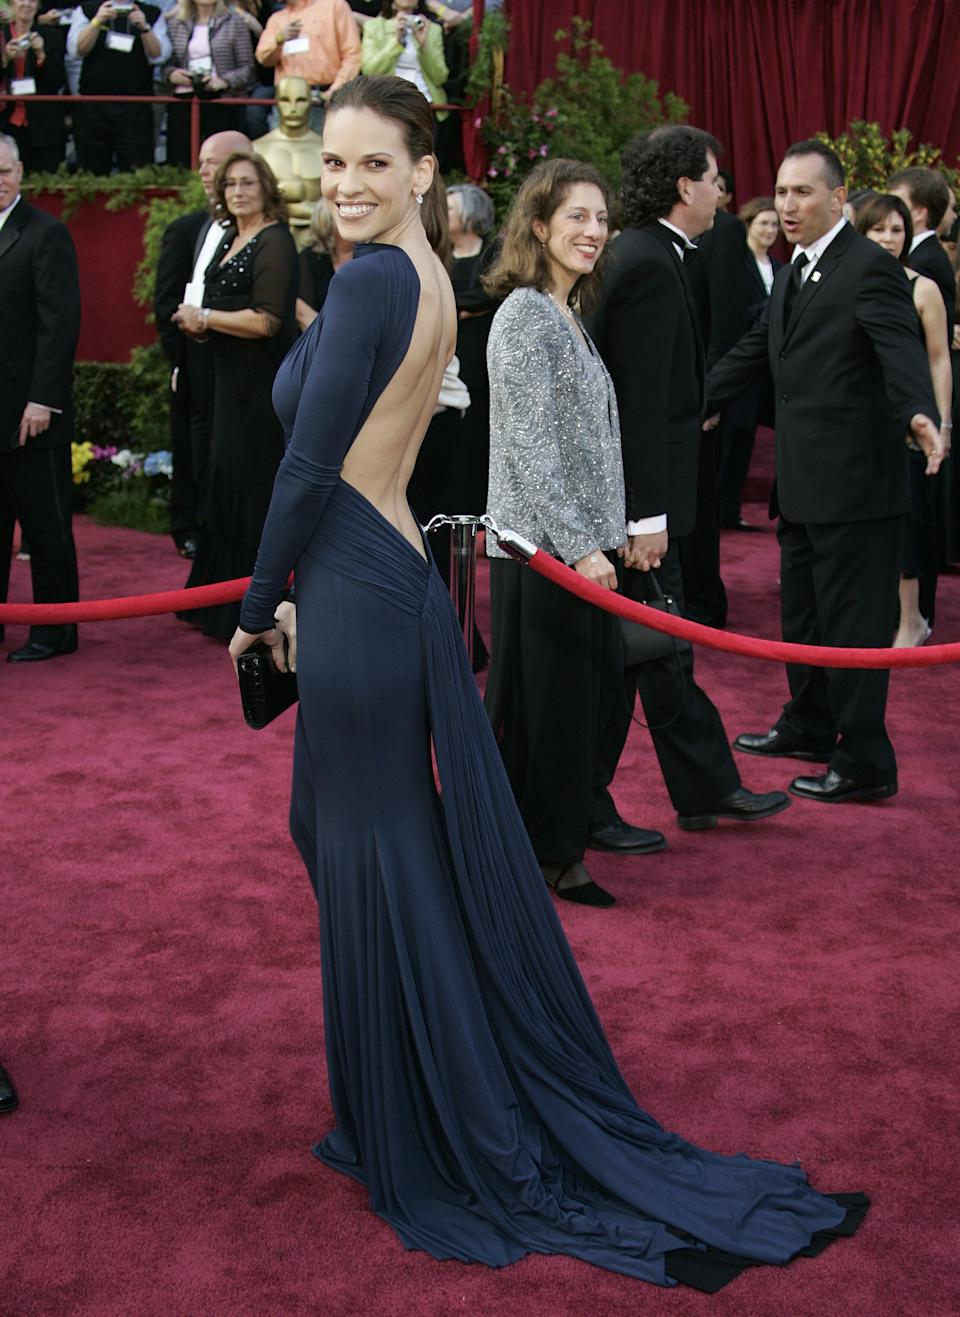 "<p>Swank accepted her second Best Actress Oscar for her role in ""Million Dollar Baby"" in a jaw-dropping navy blue backless gown by French designer Guy Laroche.</p>"